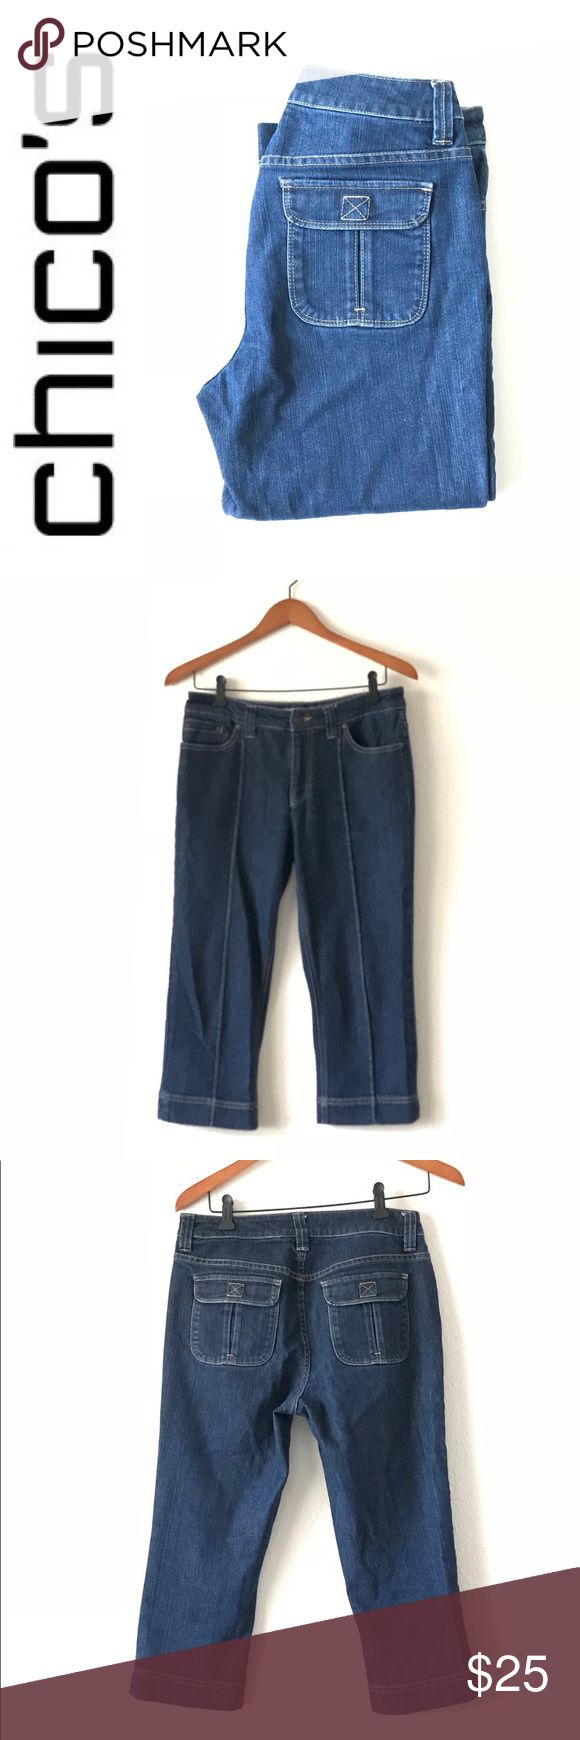 """Chico's Platinum Womens Crop Jeans Capri Indigo Chico'sPlatinumWomen's Crop Jeans In Capri Indigo Size 5 in excellent condition • Zip & button closure. • 5-pocket styling. • Back flap pockets. • Slightly tapered leg. • Regular inseam: 20"""". • Cotton, polyester & elastane. Approximately measurements last pic Chico's Jeans Ankle & Cropped"""